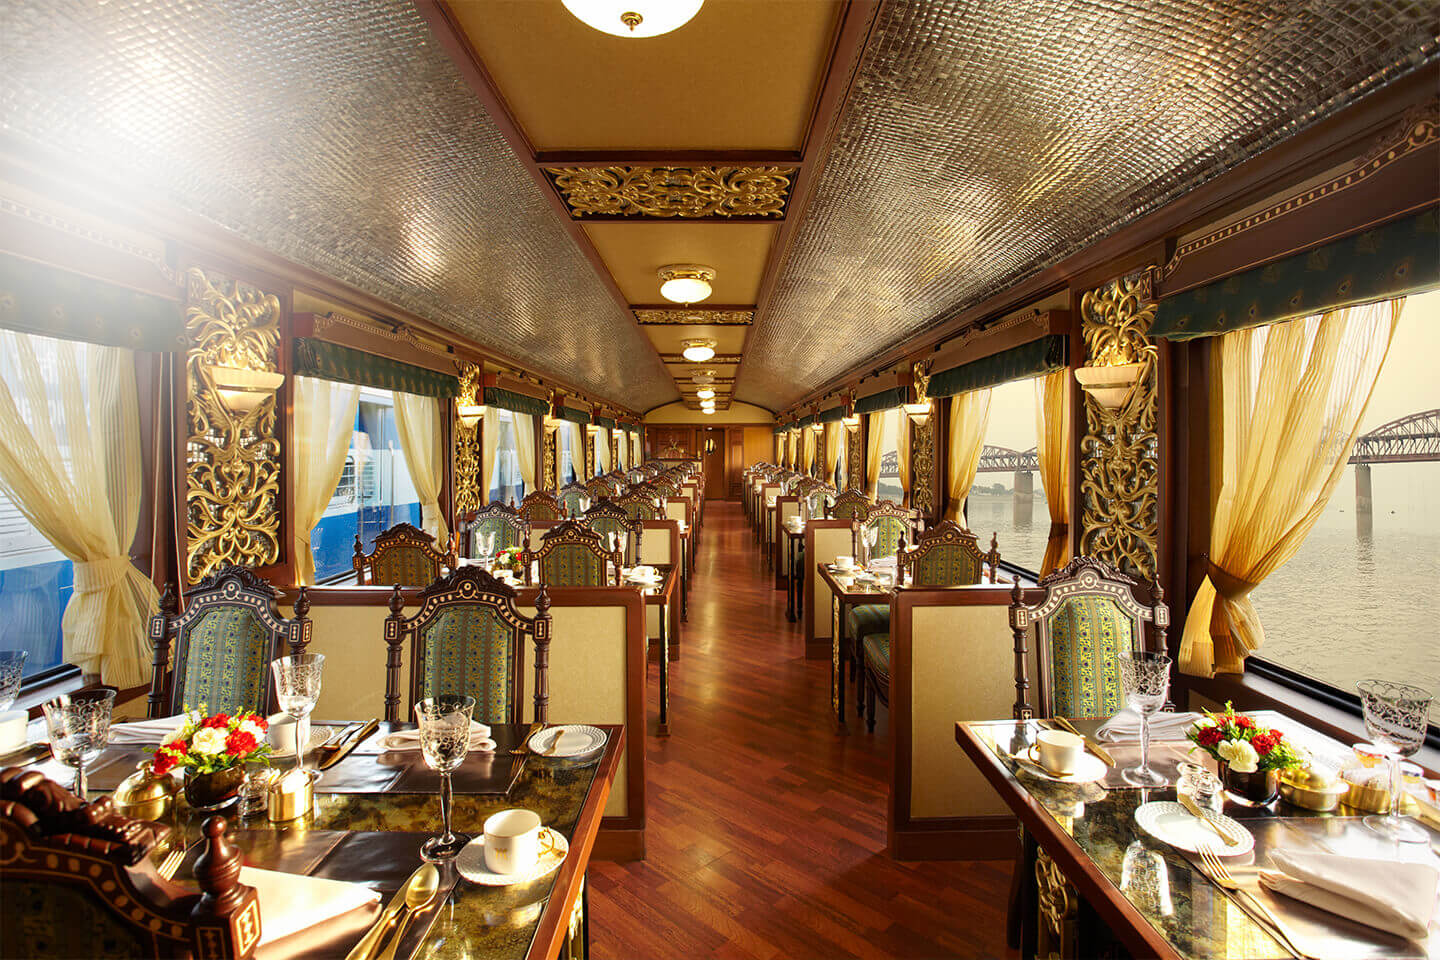 slider02 – 5 Most Luxurious Trains: Kingdom on Wheels